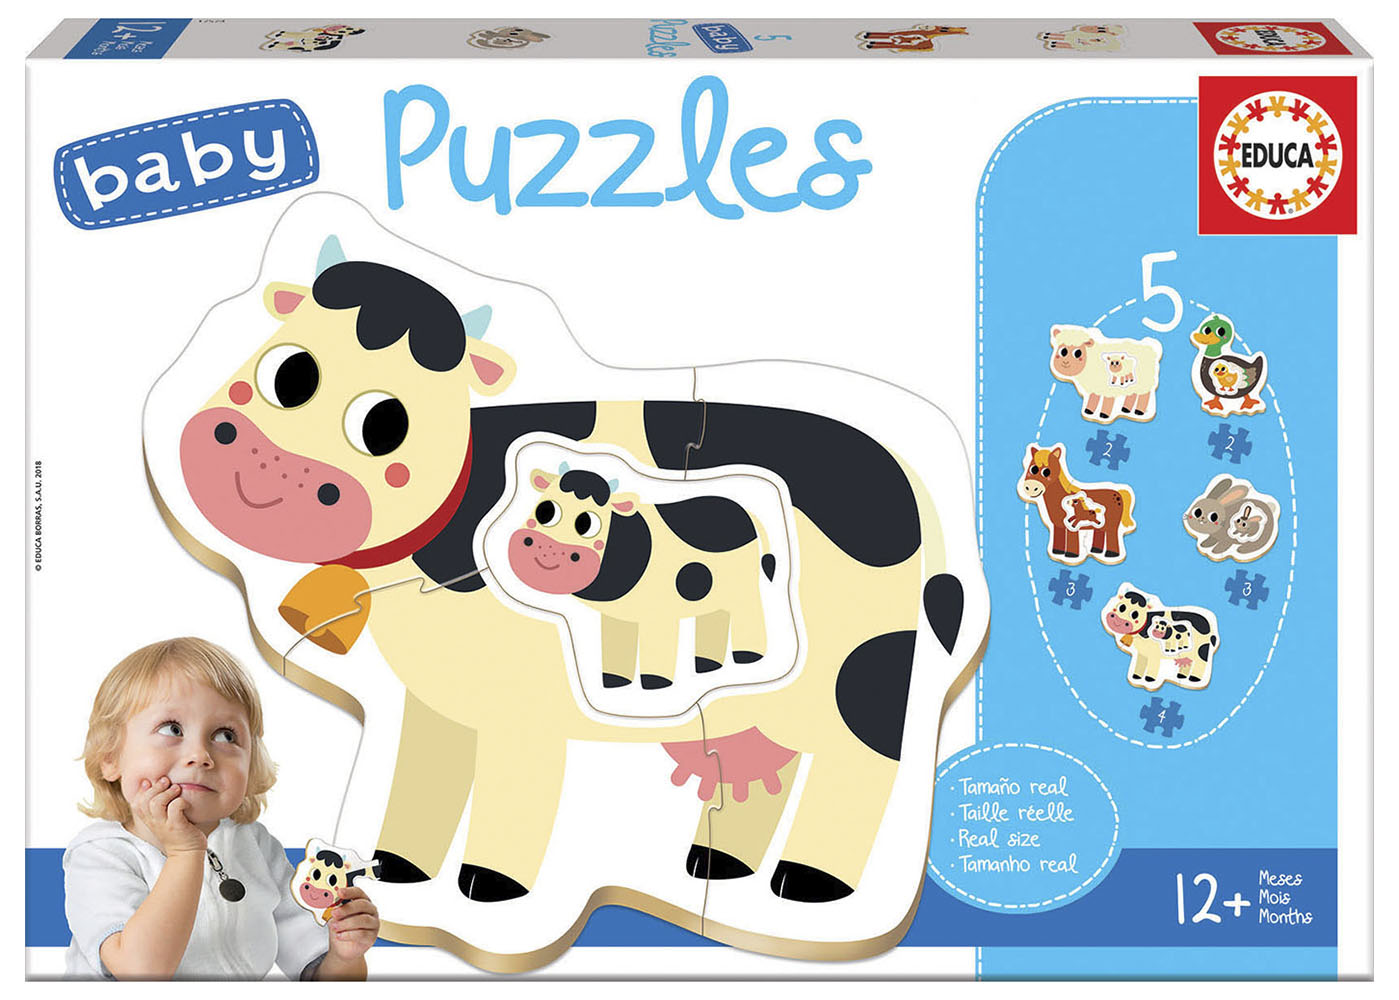 5 Baby Puzzles - The farm